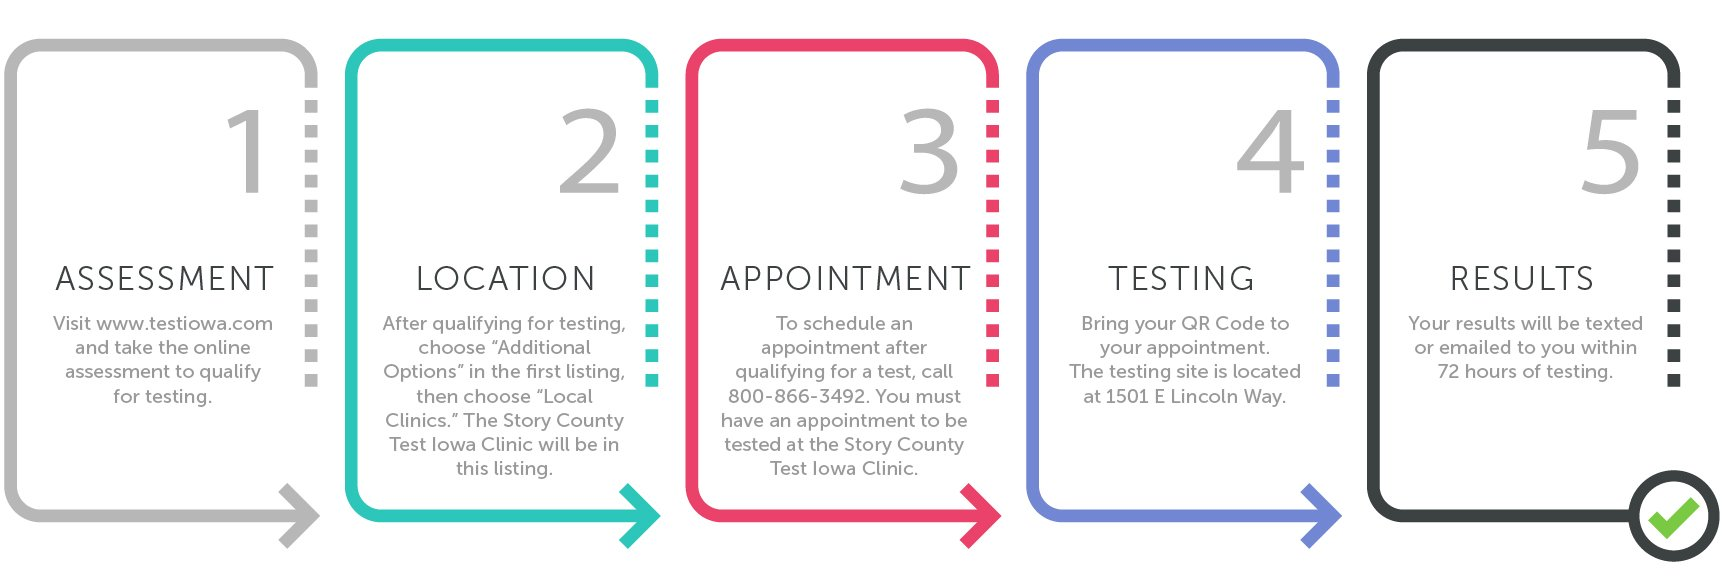 Process for Testing at Story County's Test Iowa Clinic